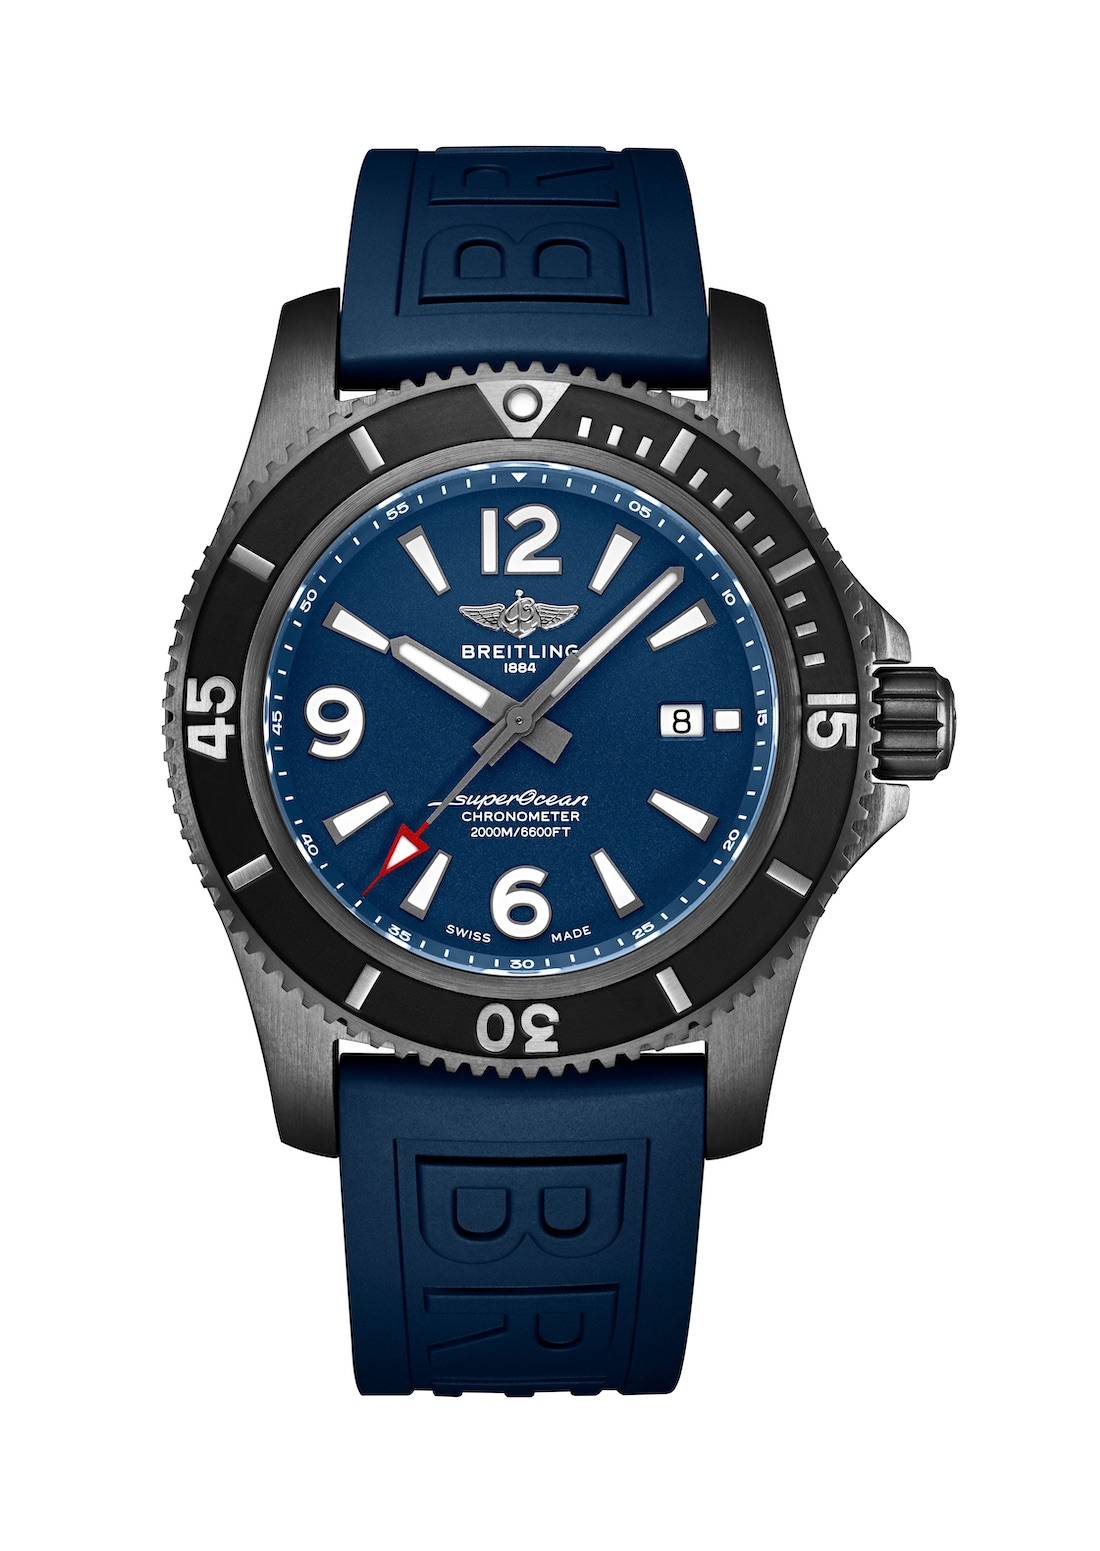 04_Superocean 46 in black steel with blue dial and blue Diver Pro III rubber strap_22851_19-03-19.jpg